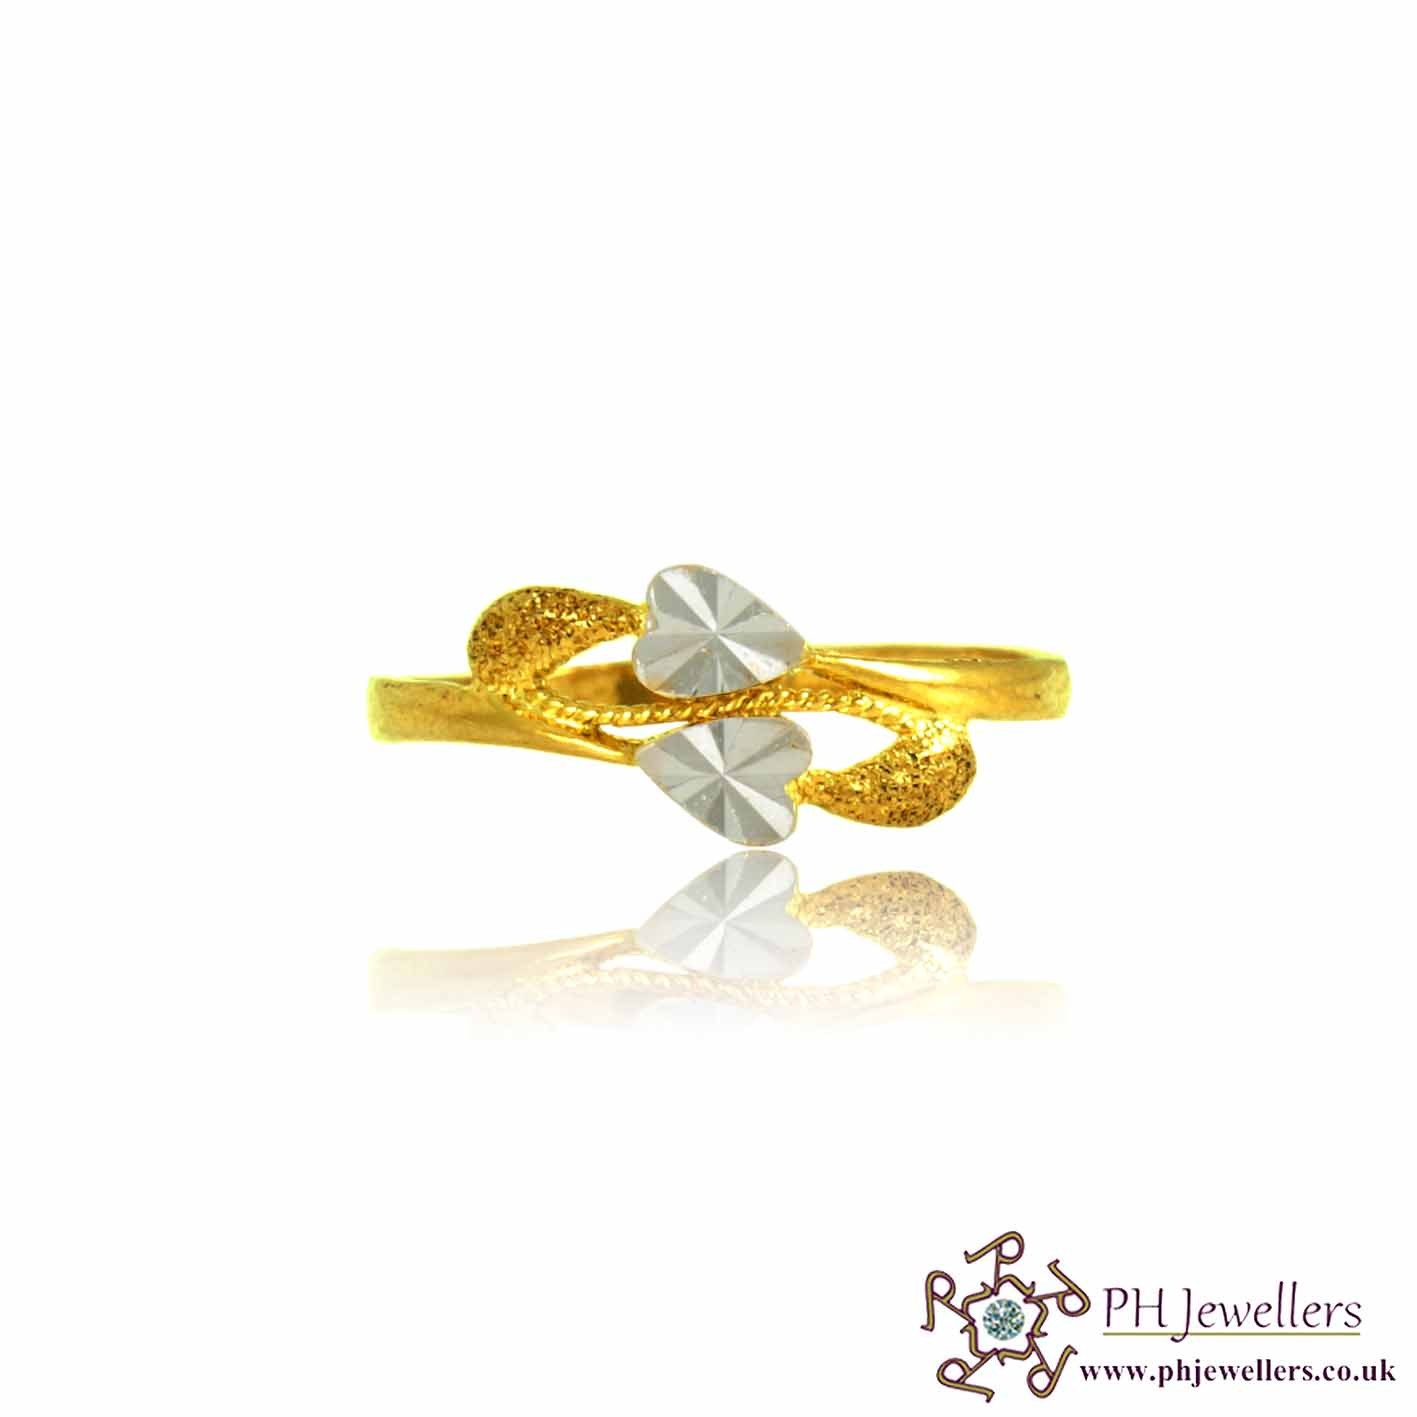 22ct 916 Hallmark Yellow Gold Size O 1/2, P Two side Heart Ring PR30